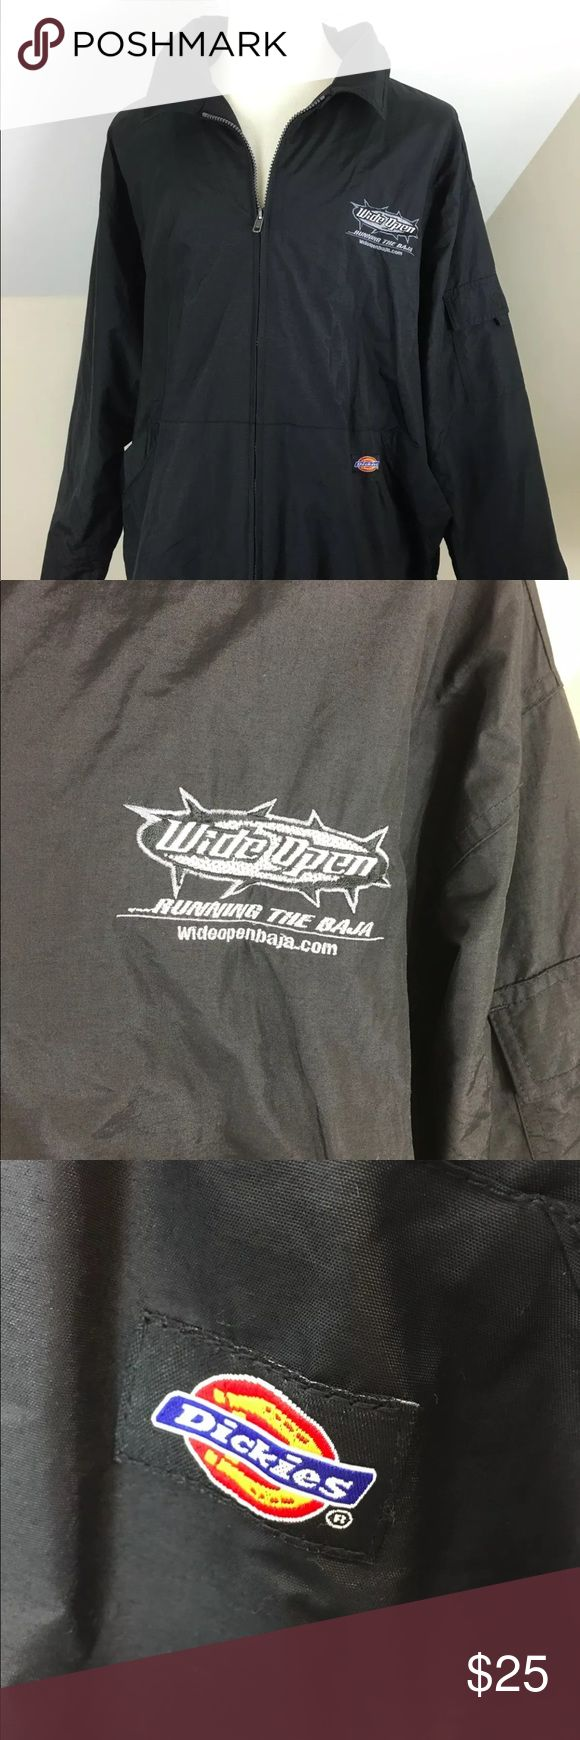 """Dickies Windbreaker Wide Open Running Baja 2XL Dickies Men's Windbreaker Preowned- Nice condition. No holes, tears or stains Chest embroidered """"Wide Open, Running the Baja,"""" size- 2XL 100% Nylon- machine washable 2 front pockets 1 pocket on sleeve toggle waist zipper front velcro at the end of sleeves for adjusting Dickies Jackets & Coats Windbreakers"""